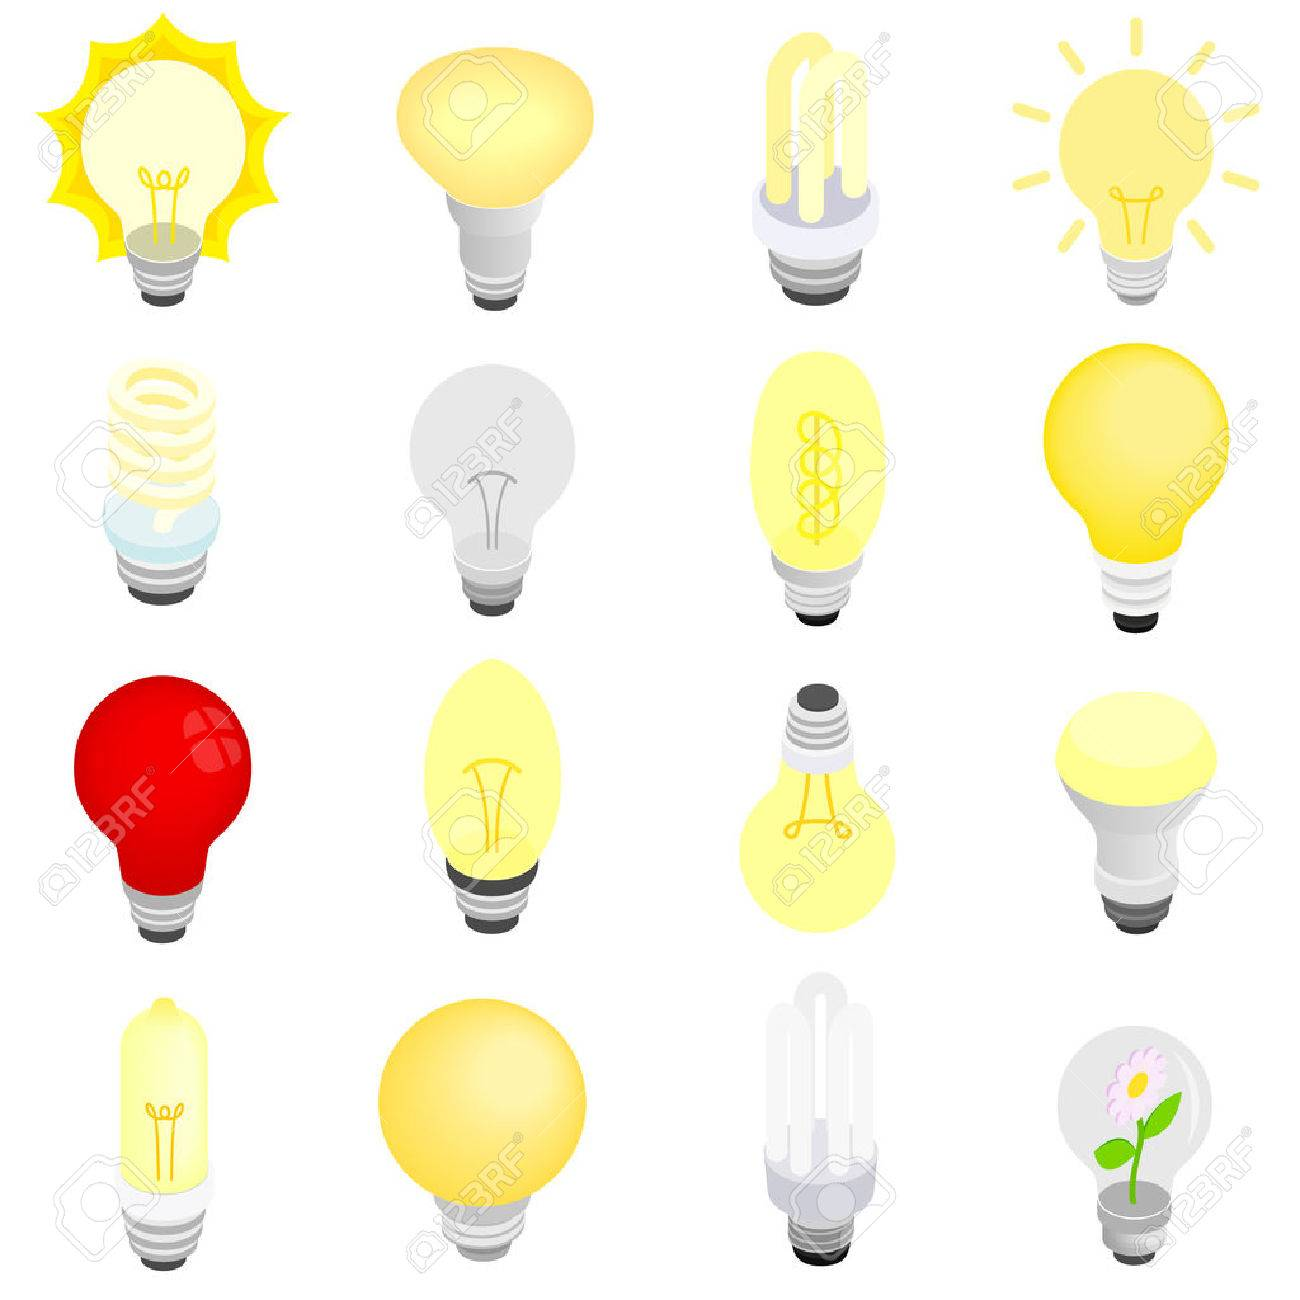 Light bulbs icons in isometric 3d style isolated on white - 52995565